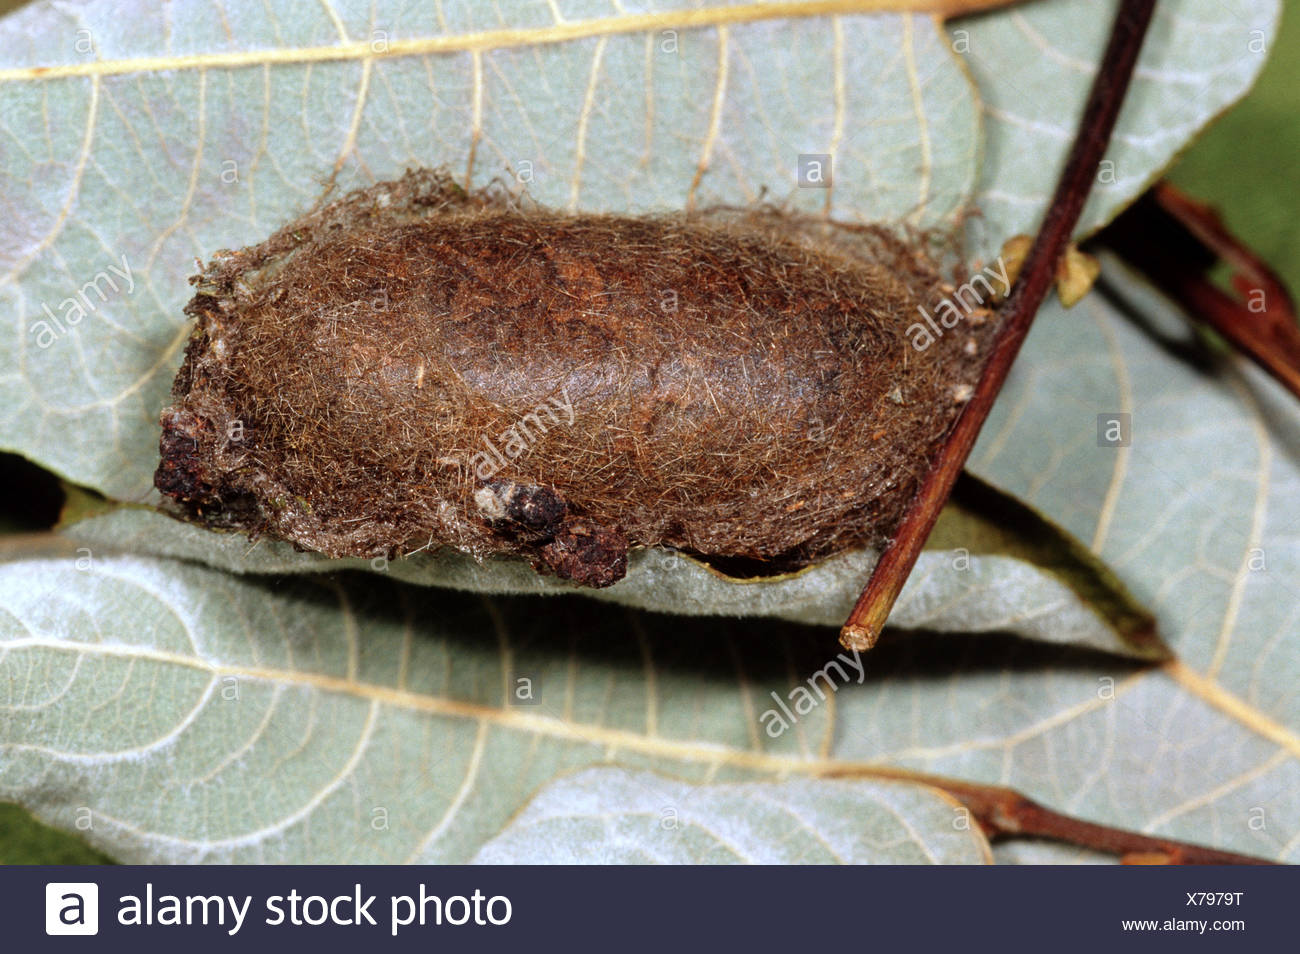 oak eggar (Lasiocampa quercus), Pupal stage, Germany - Stock Image